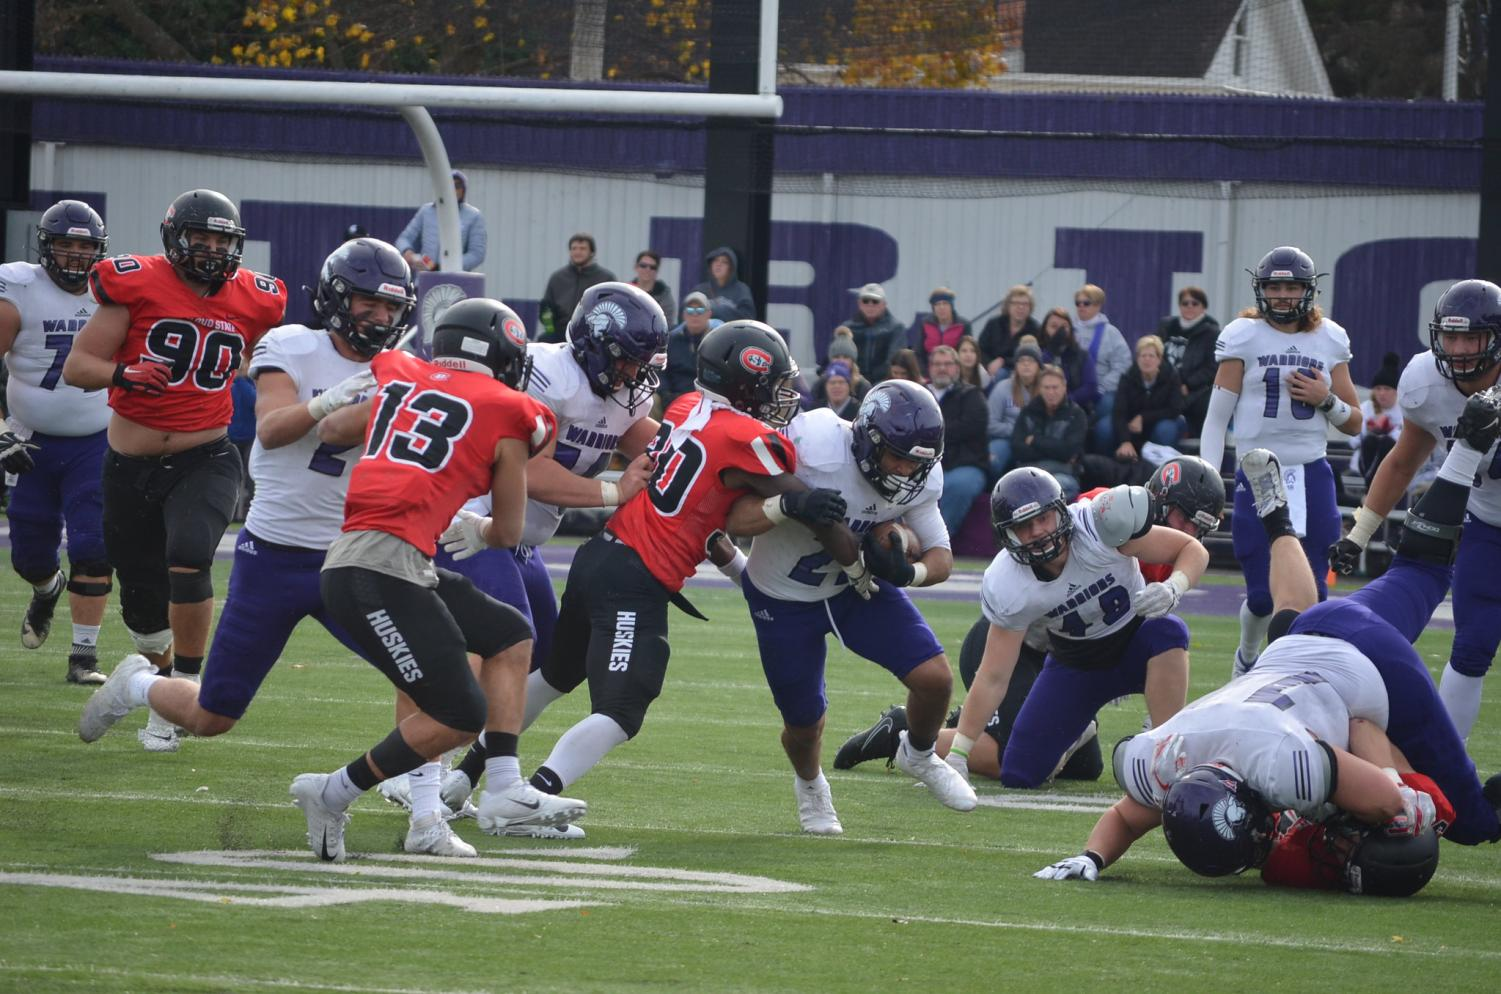 Sam Santiago-Lloyd, a junior running back, pushes through the defensive line against St. Cloud State University on Saturday, October 26 in Altra Federal Credit Union Stadium.